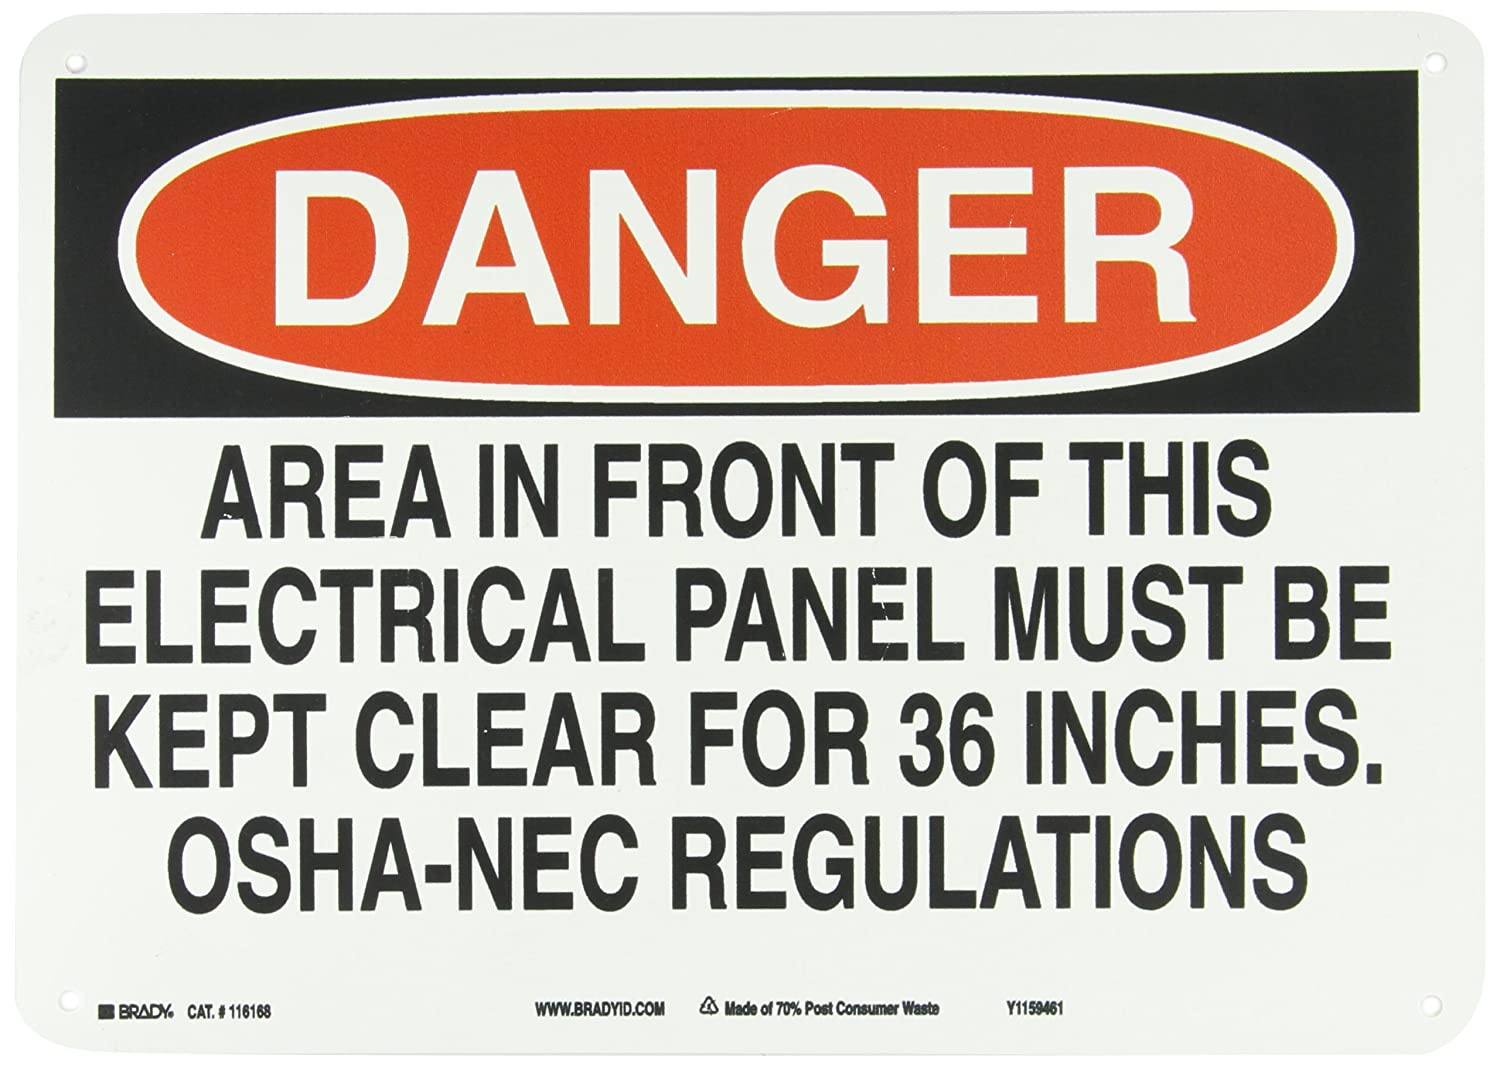 Brady 116168 14 Width x 10 Height B-563 Plastic Legend Danger Area In Front Of Electrical Panel Must Be Kept Clear For 36 Inches-OSHA NEC Regulations Red And Black On White Color Sustainable Safety Sign